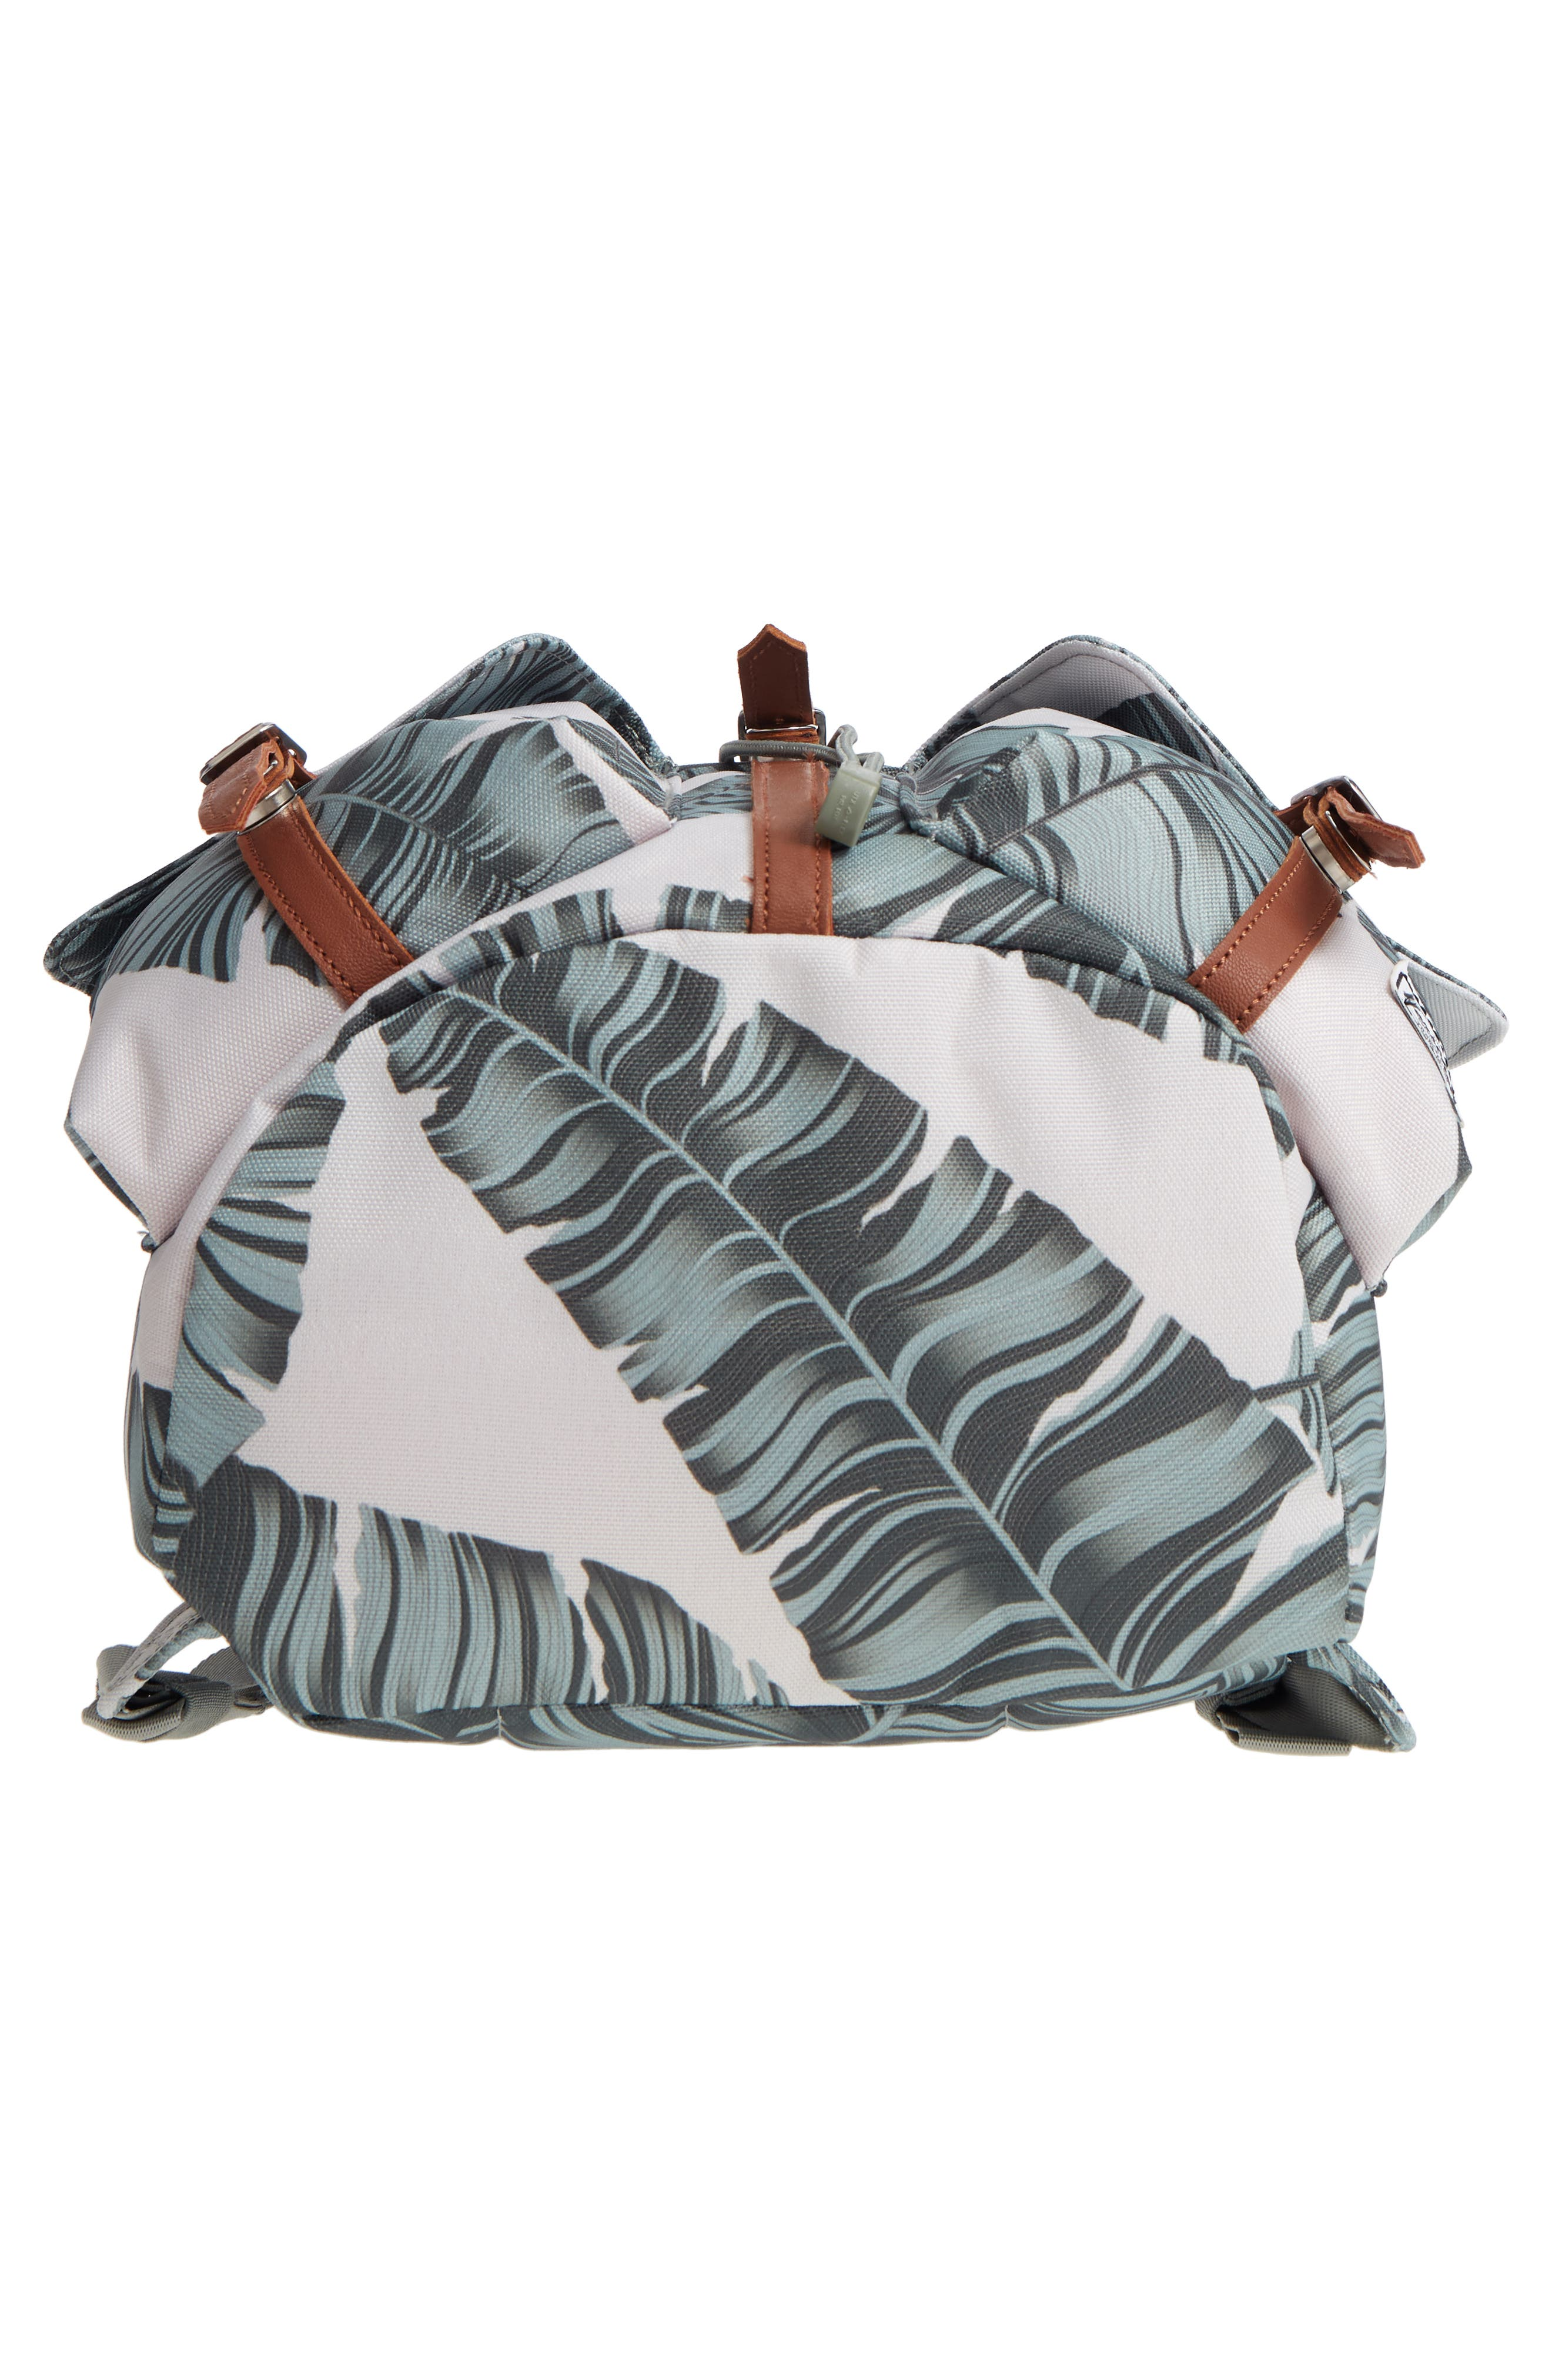 X-Small Dawson Backpack,                             Alternate thumbnail 6, color,                             Silver Birch Palm